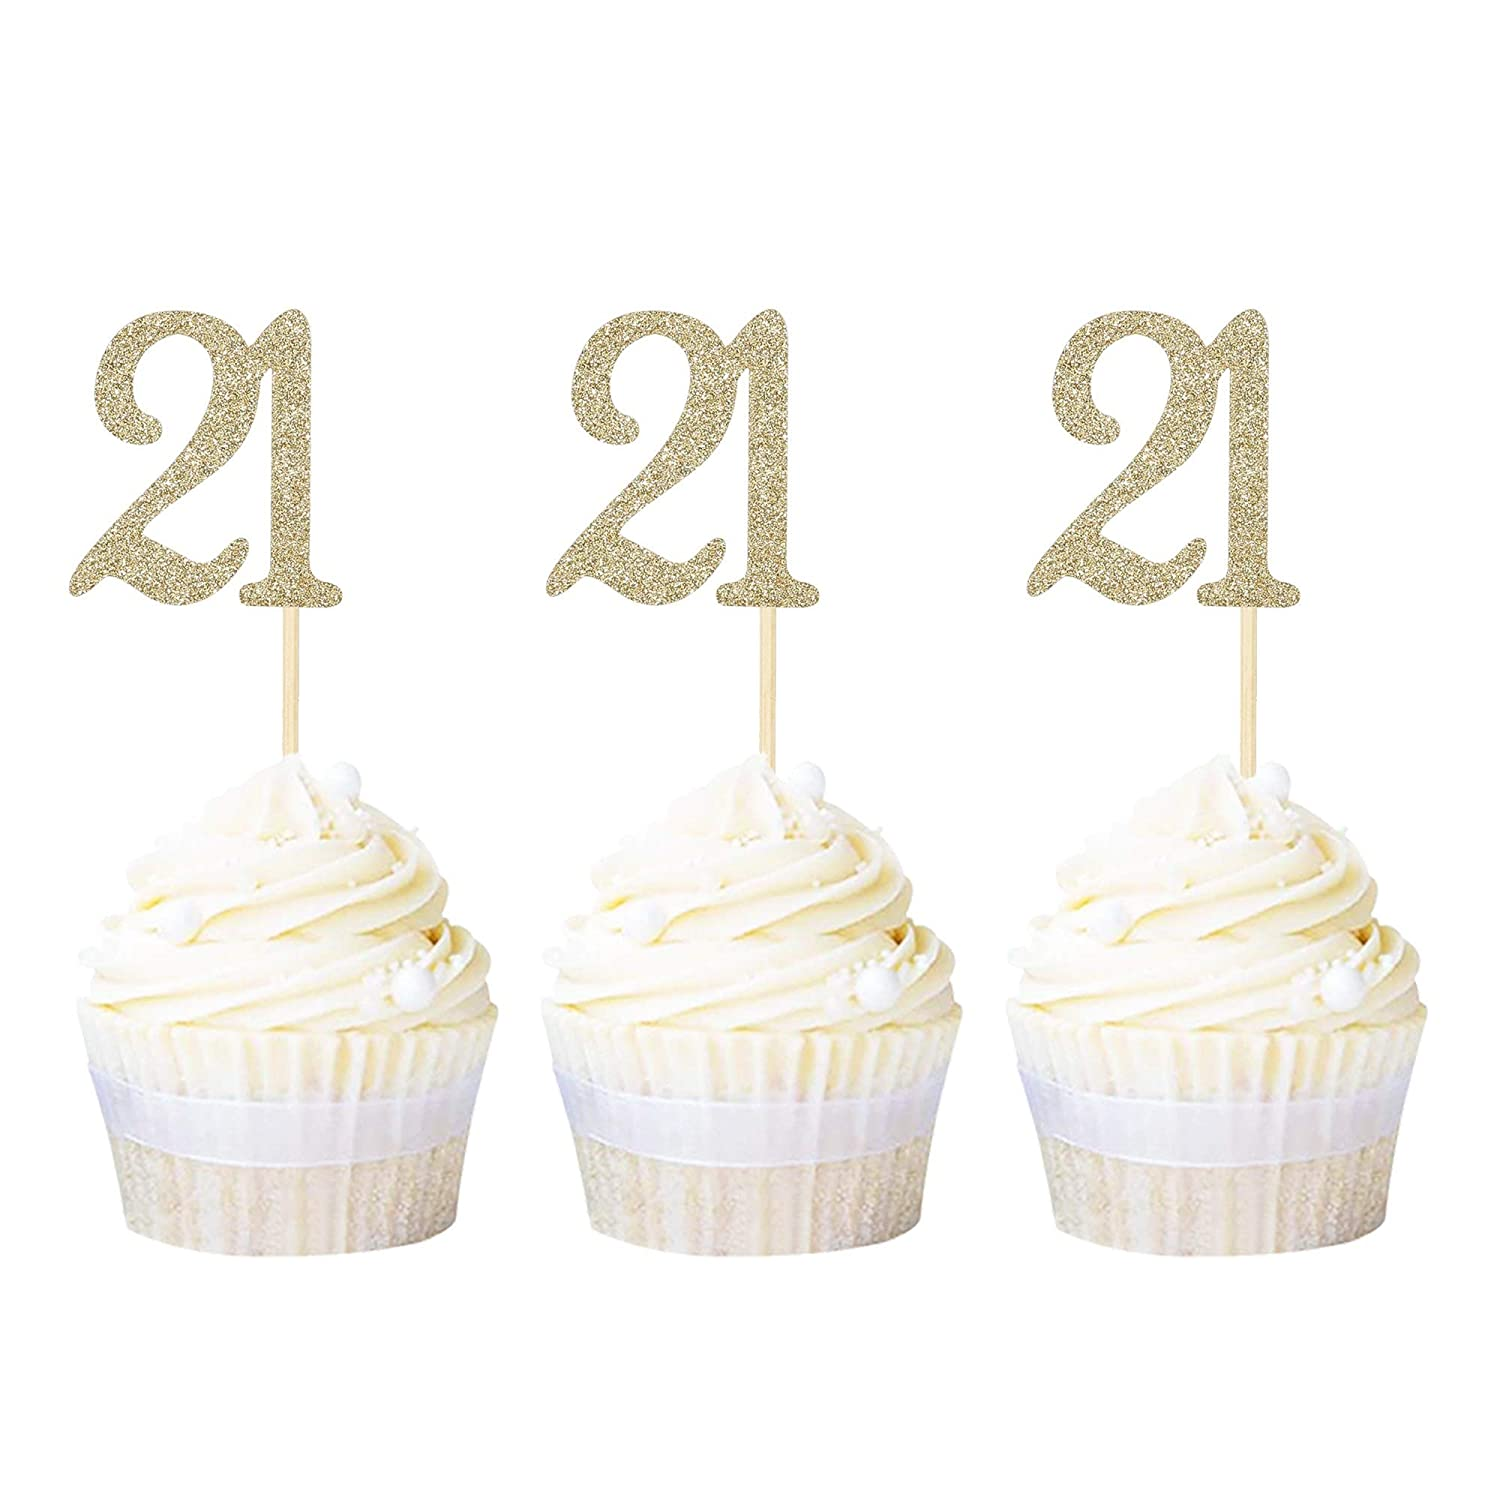 Rose Gold 3 Pieces 21st Birthday Cake Toppers Happy 21st Birthday Cake Cupcake Topper Picks Glitter Cake Decoration for Birthday Party Cake Supplies